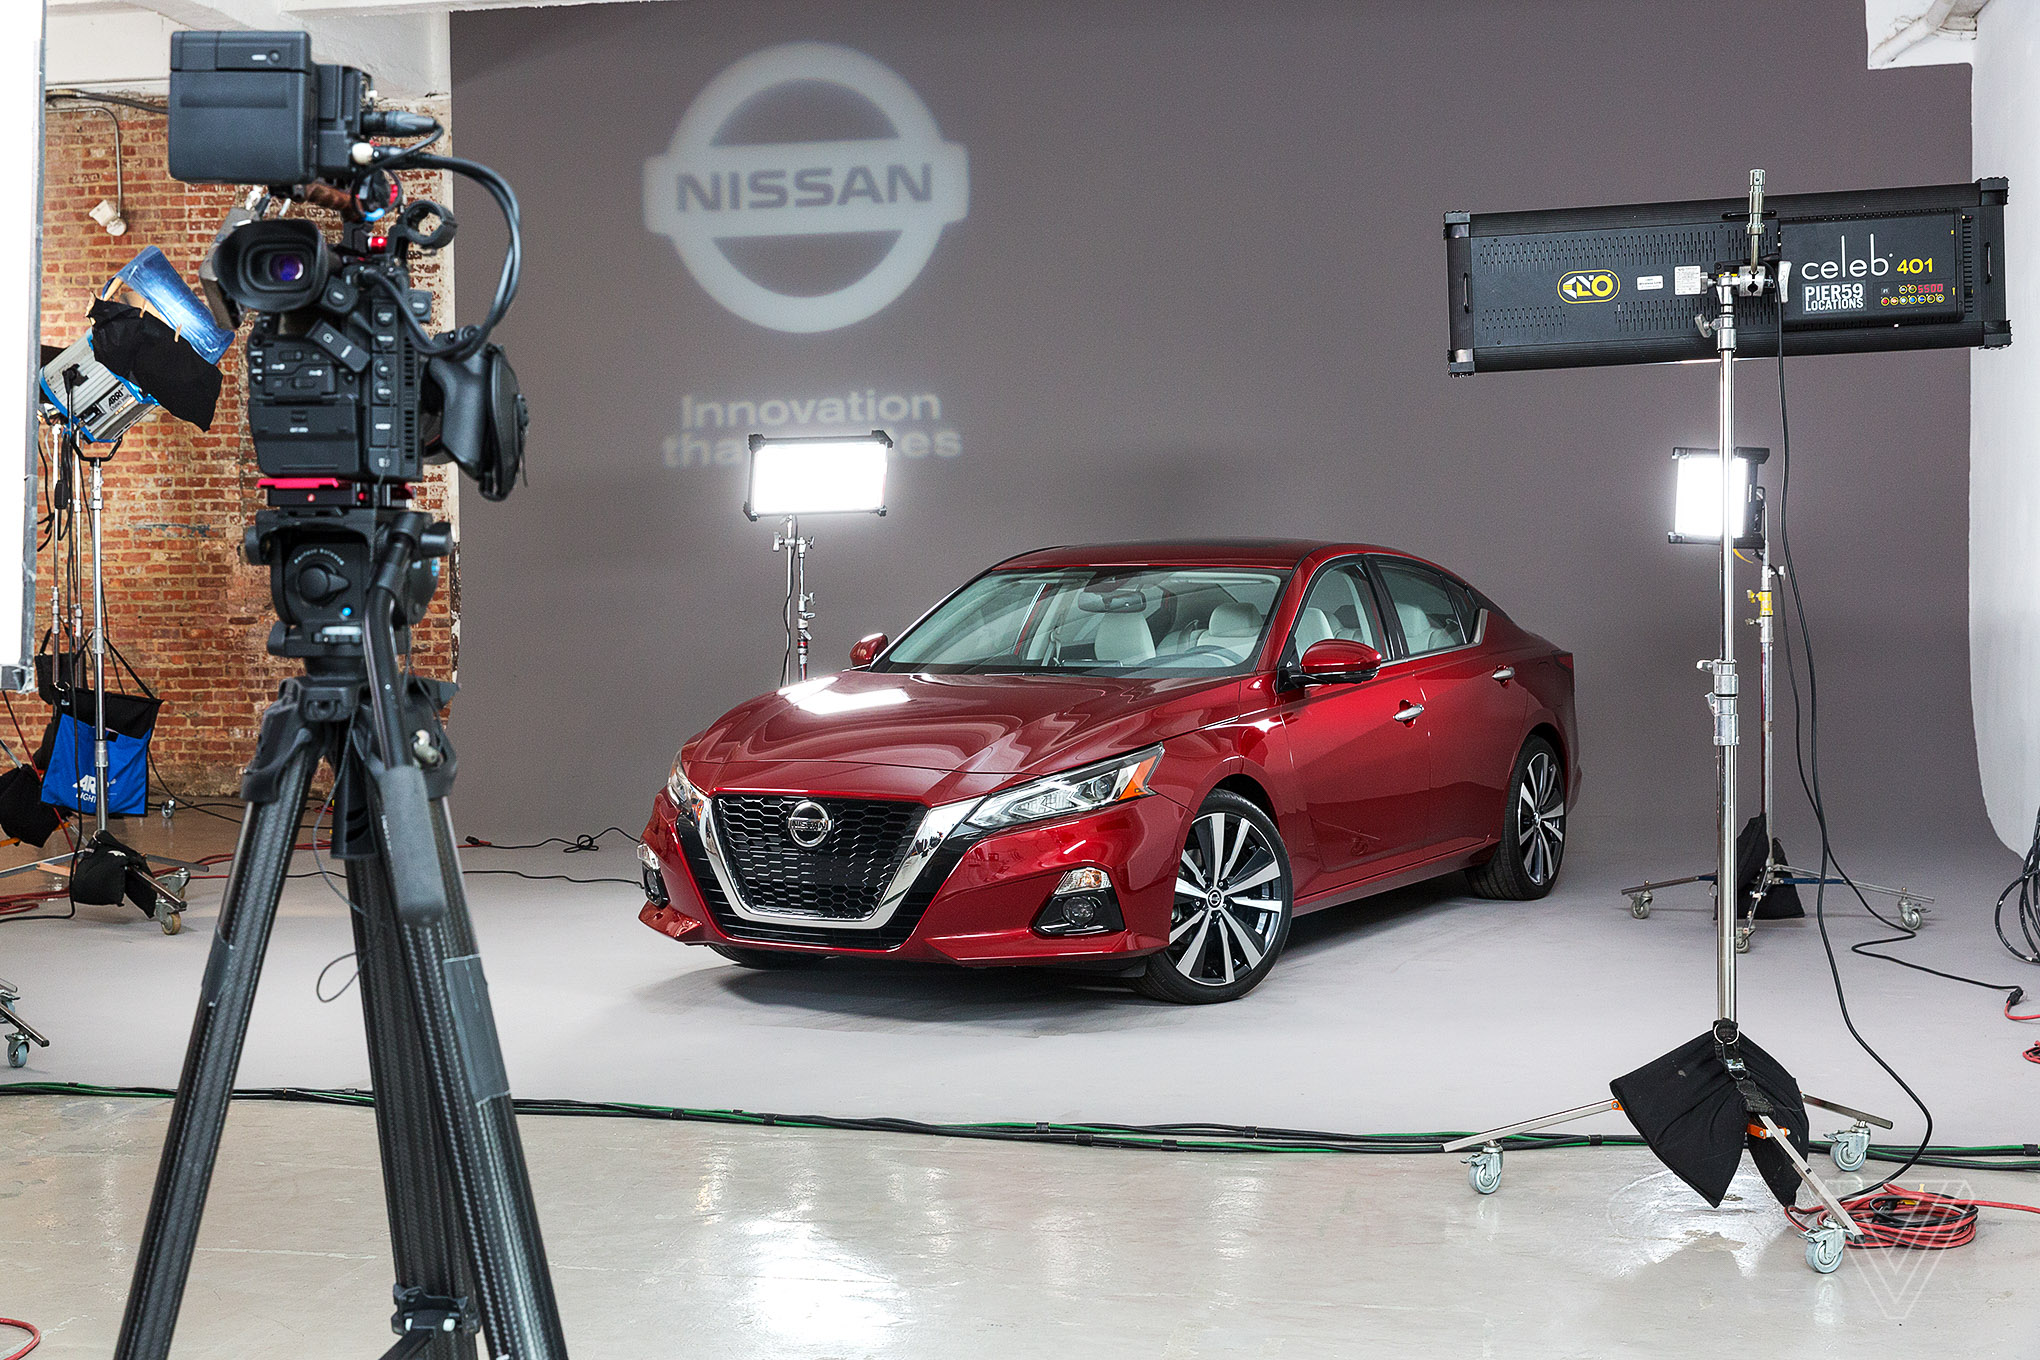 Nissans New Altima Offers Highly Automated Driving Without The - Virginia beach cruise in car show